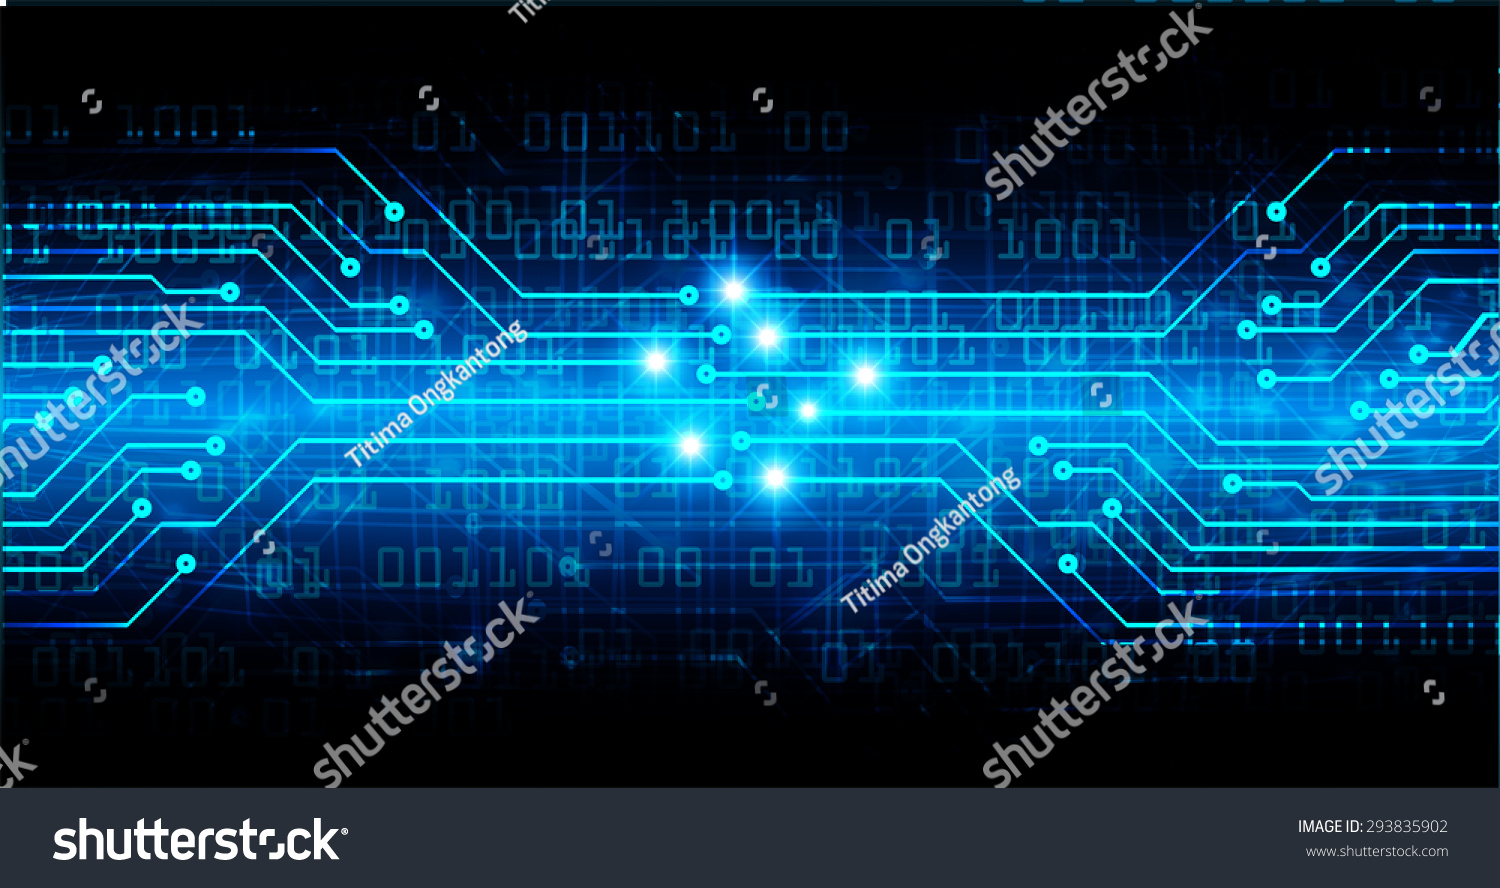 blue color Light Abstract Technology background for computer graphic